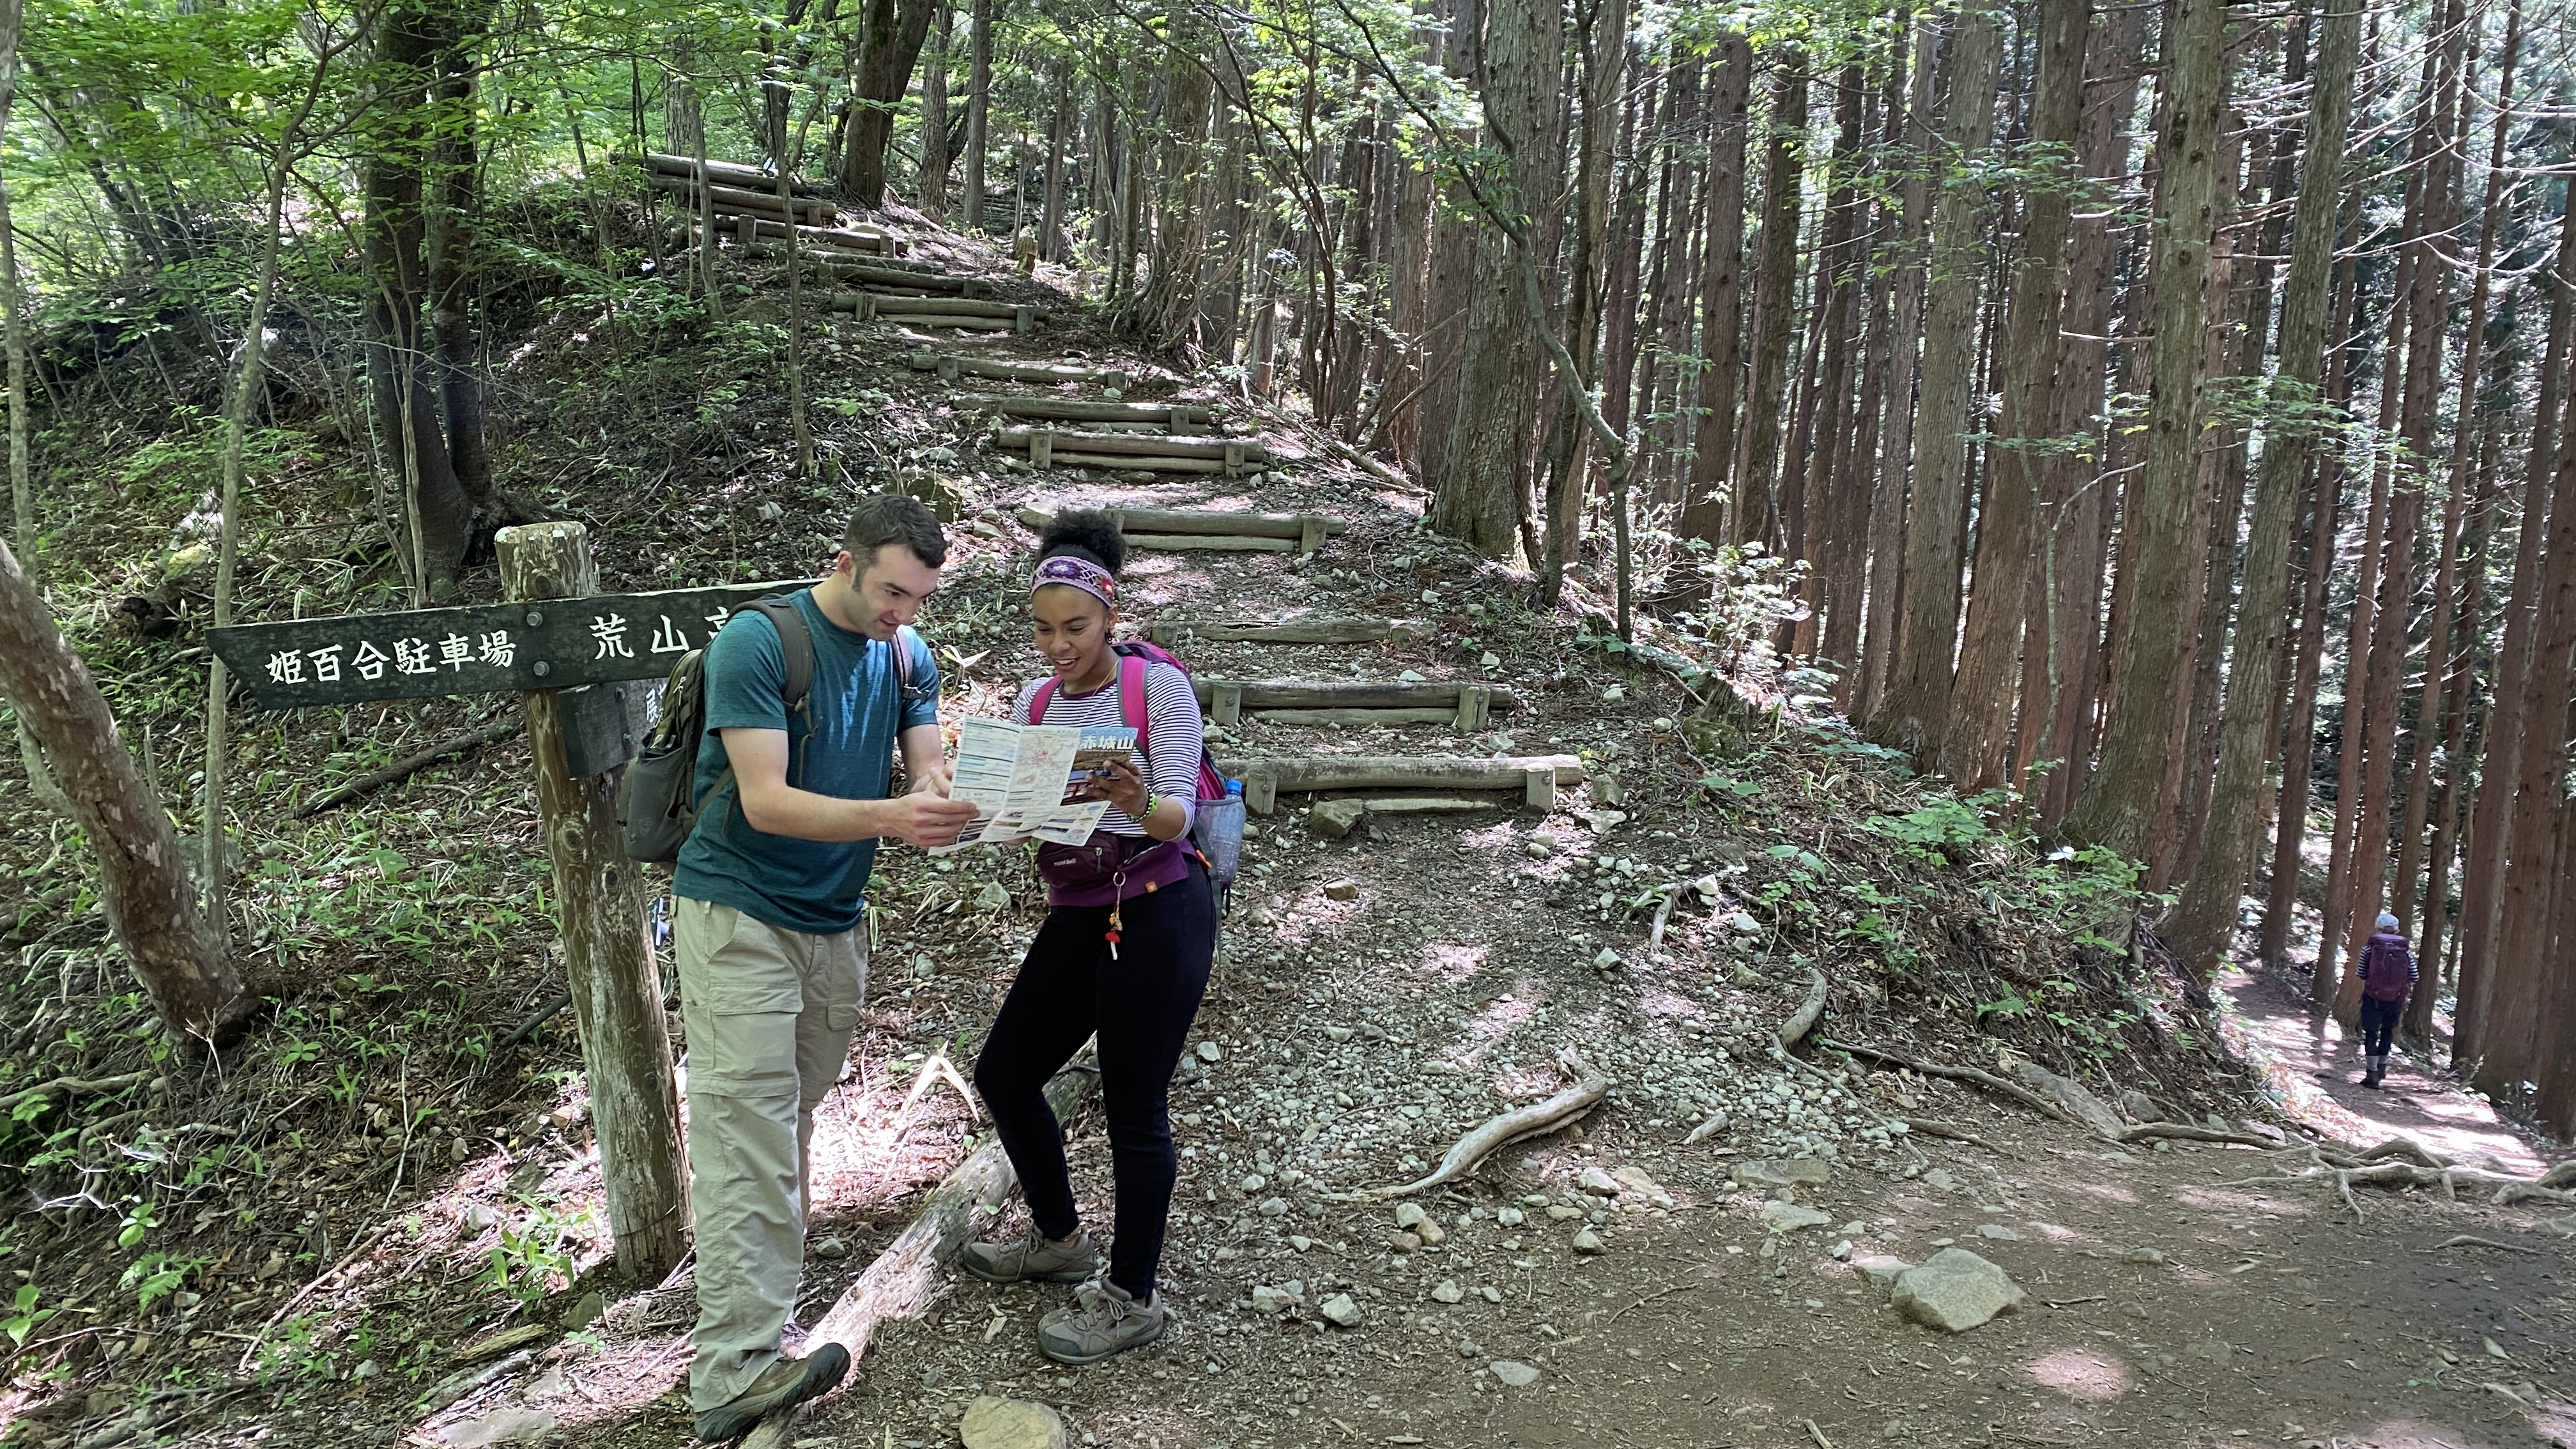 Two hikers looking at a trail map